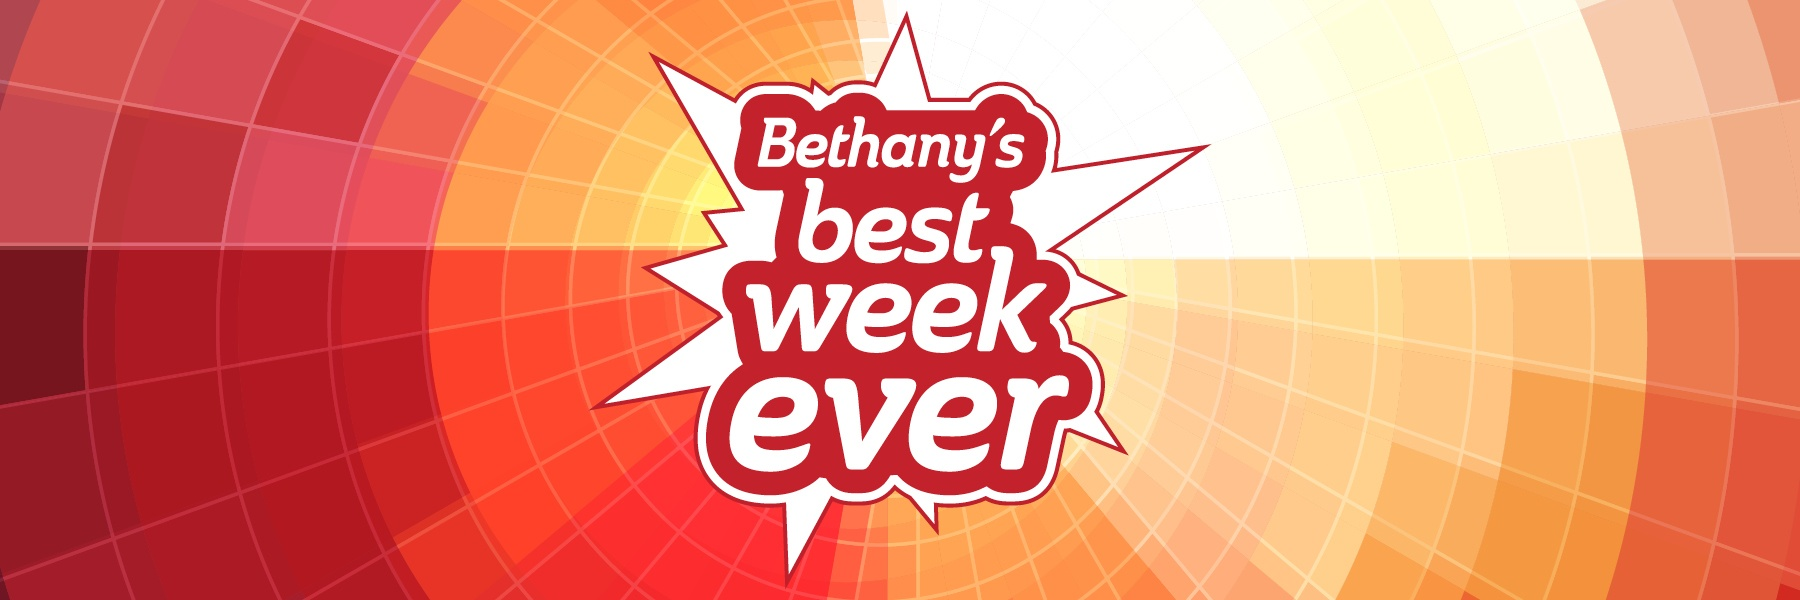 "Text on background design ""Bethany's Best Week Ever"""